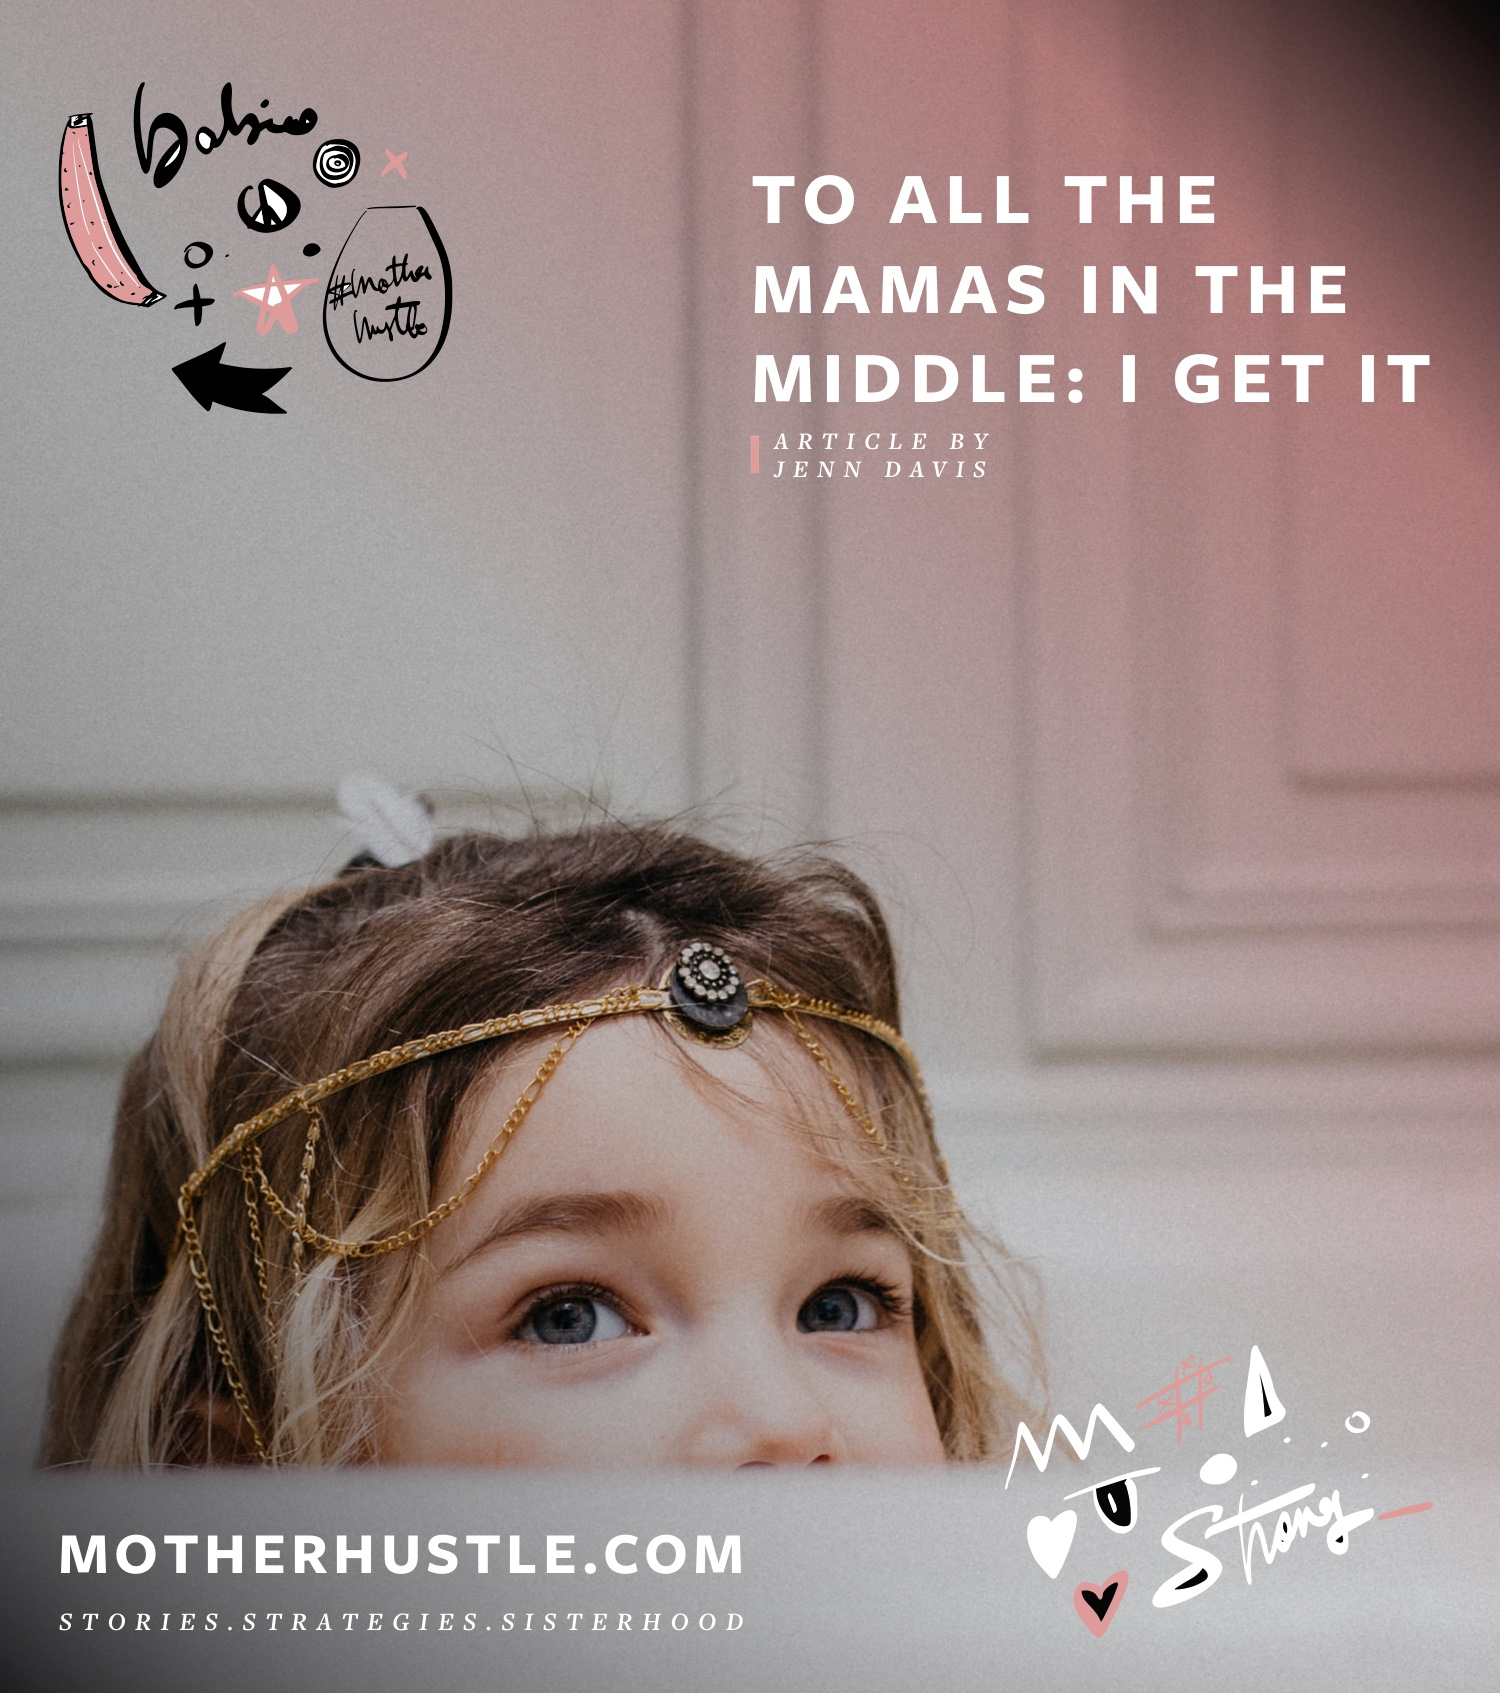 To All The Mamas In The Middle- I Get It - by Jenn Davis for MotherHustle